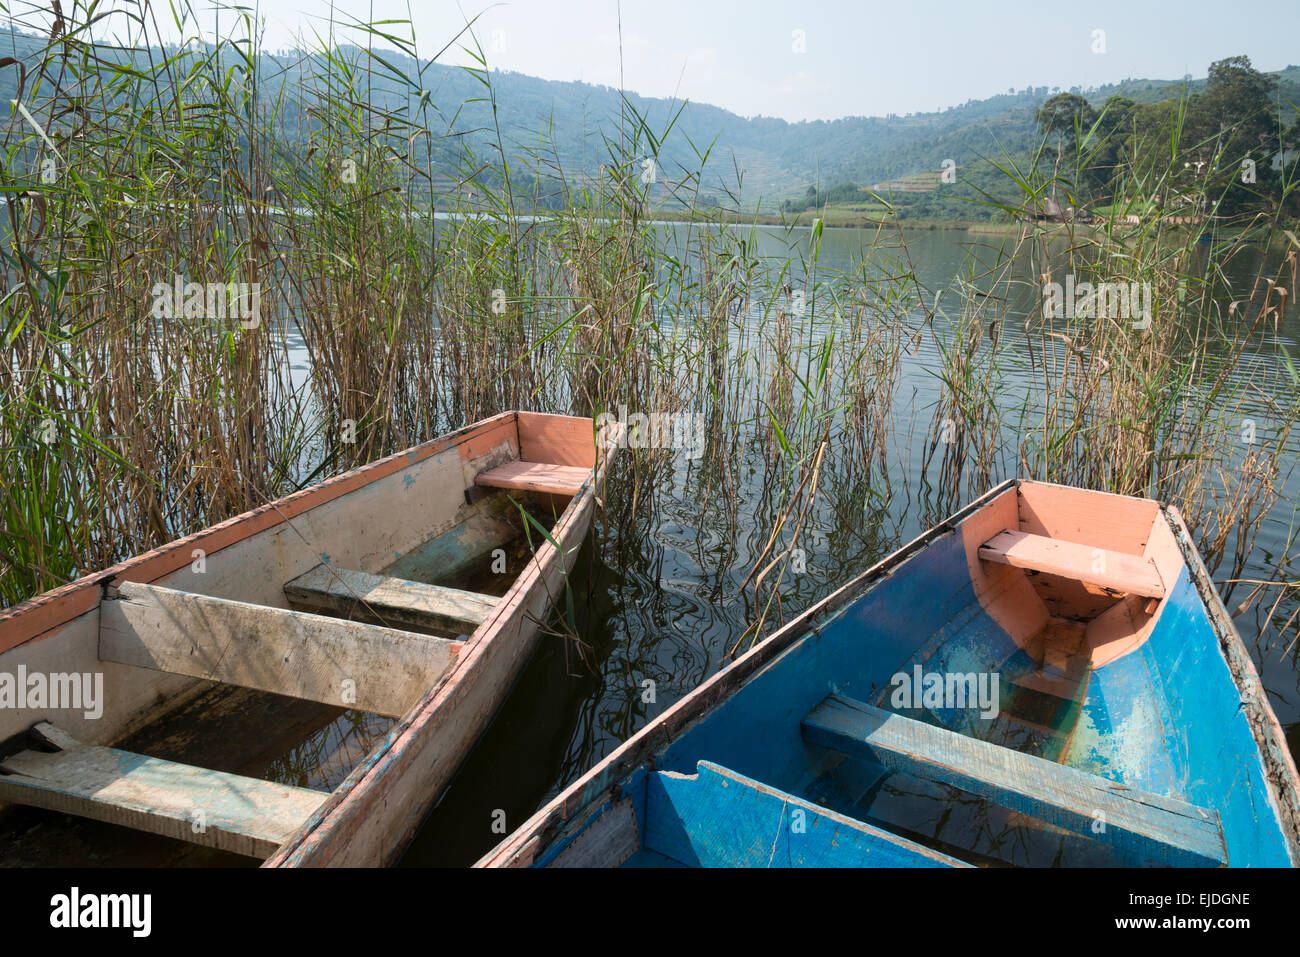 Two dingy boats on lake Bunyonyi. Uganda. - Stock Image